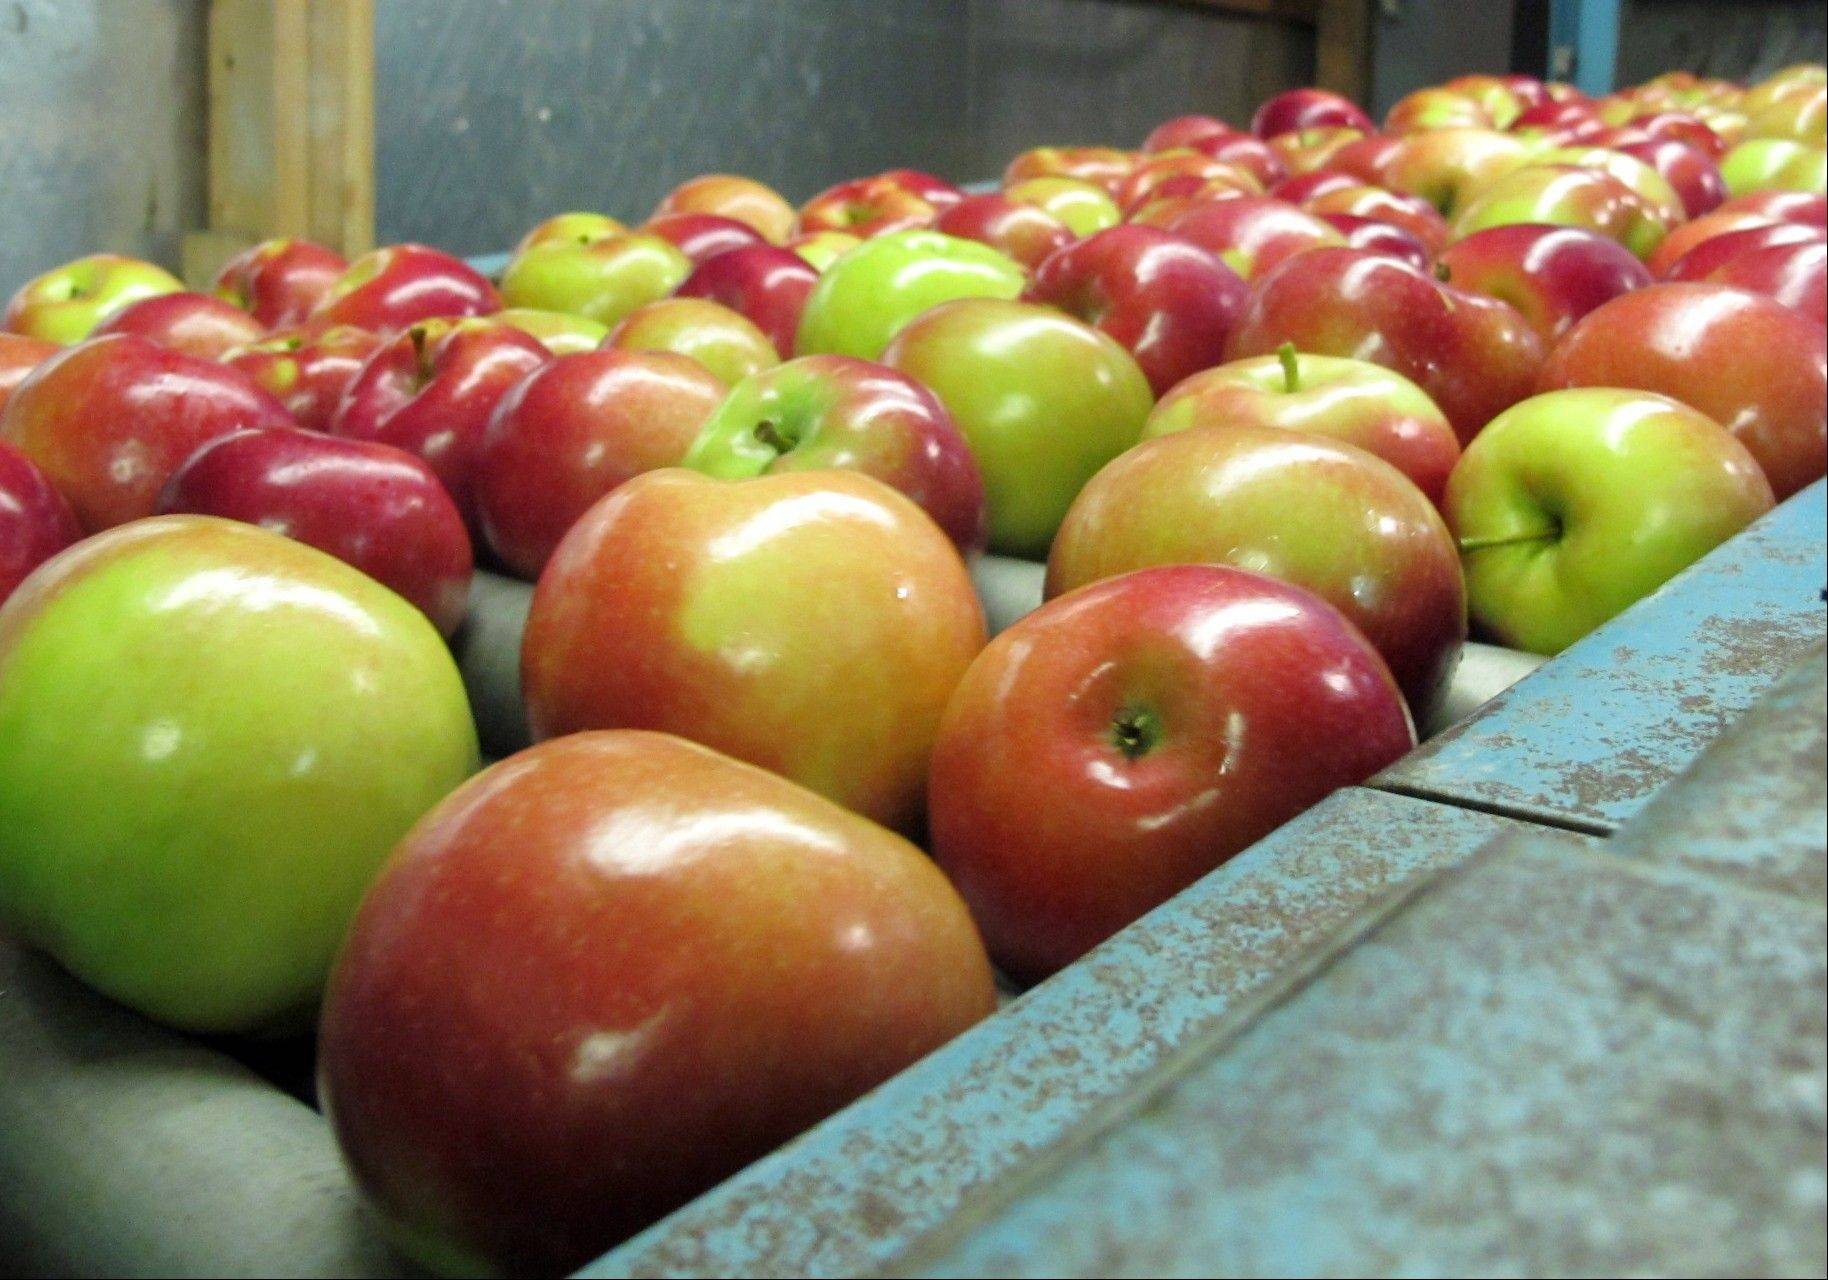 Apples move along a conveyor line at the King Orchards production warehouse in Central Lake, Mich. This year's Michigan apple crop is expected to be 10 times as plentiful as last year's.